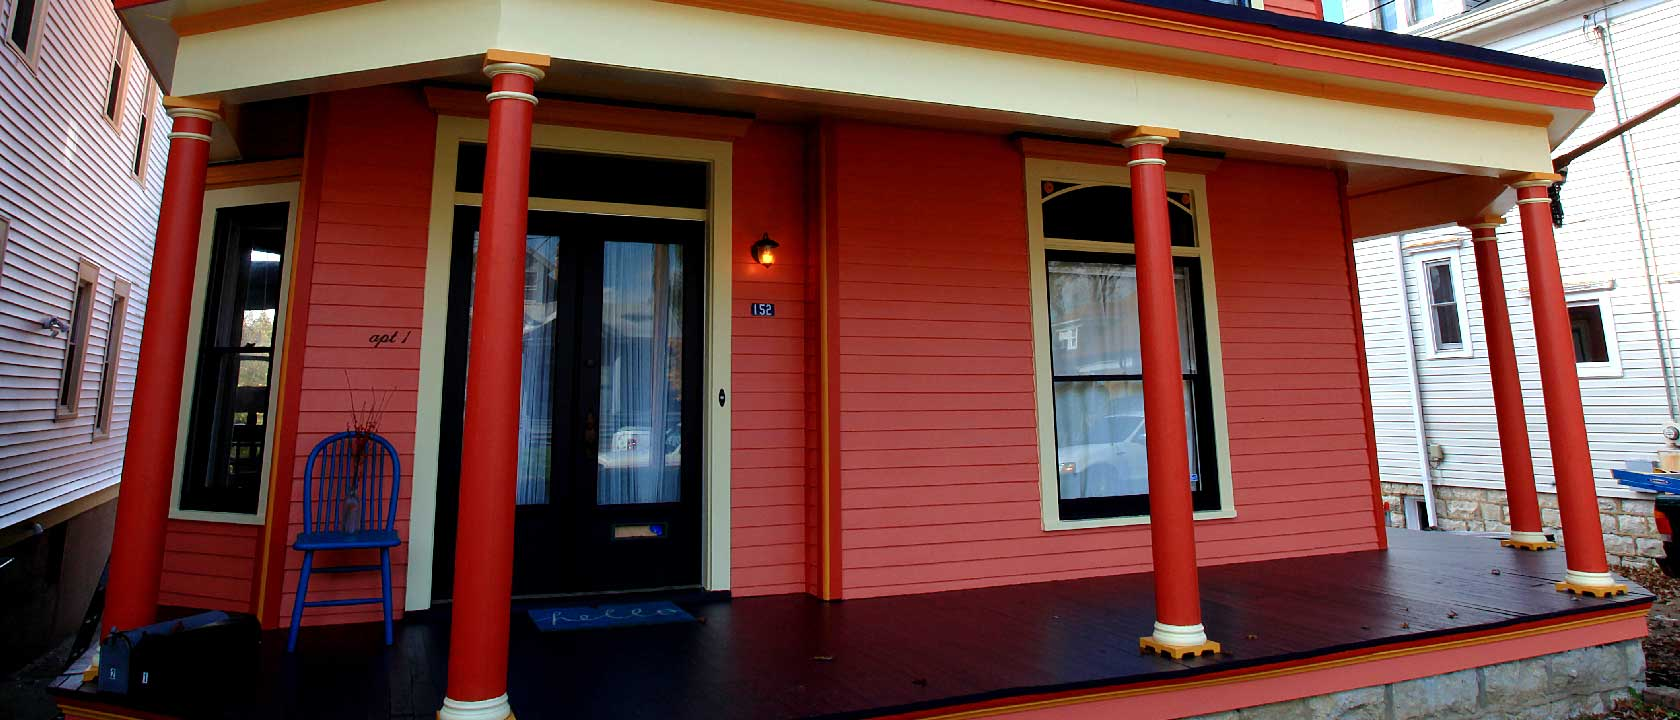 exterior paint job of red historic Princess Ann style home in the Clifton area.